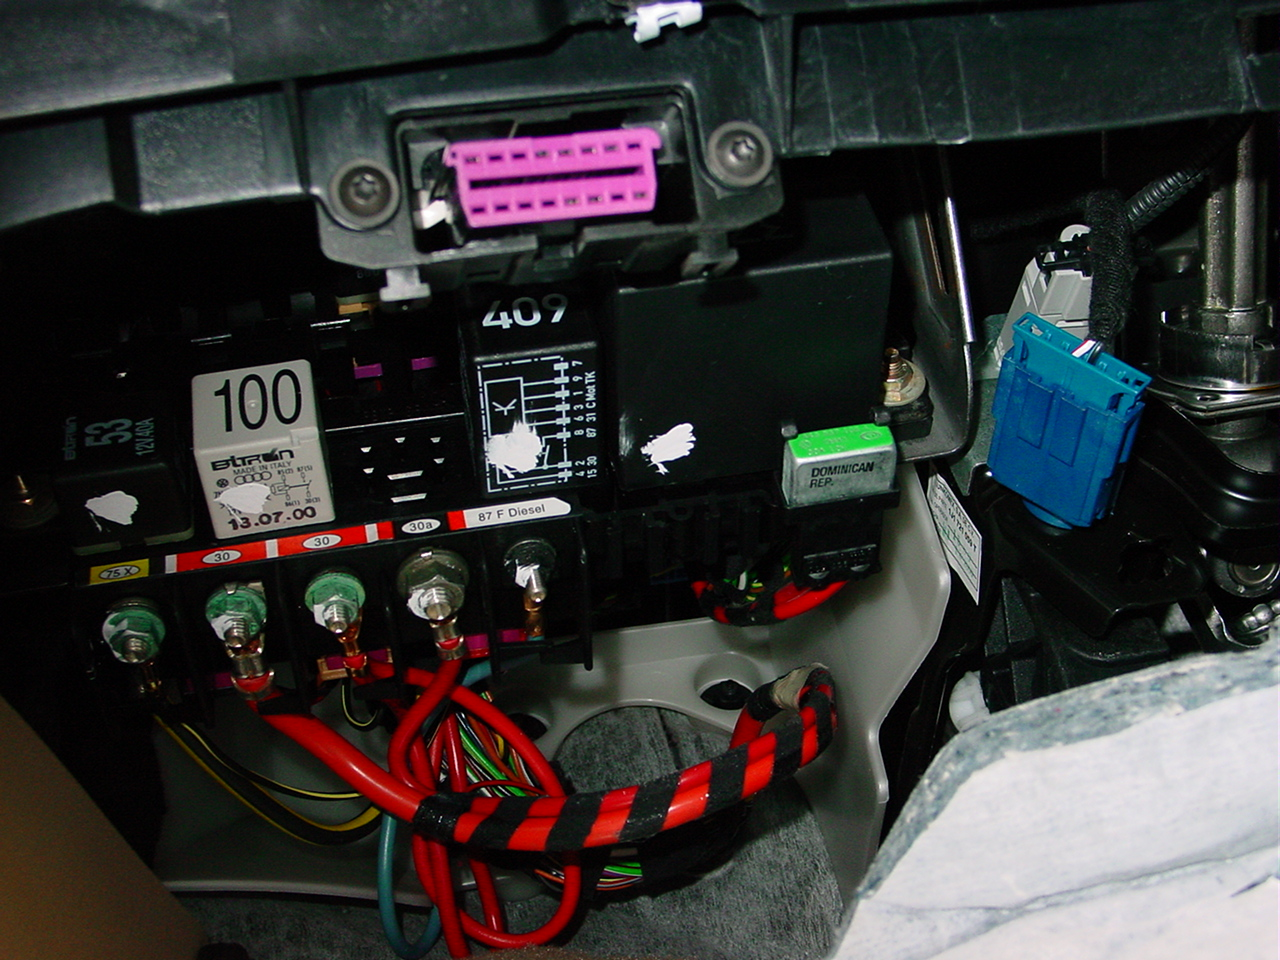 Amp Wiring Diagram Focus St Heated Seats Tdiclub Forums